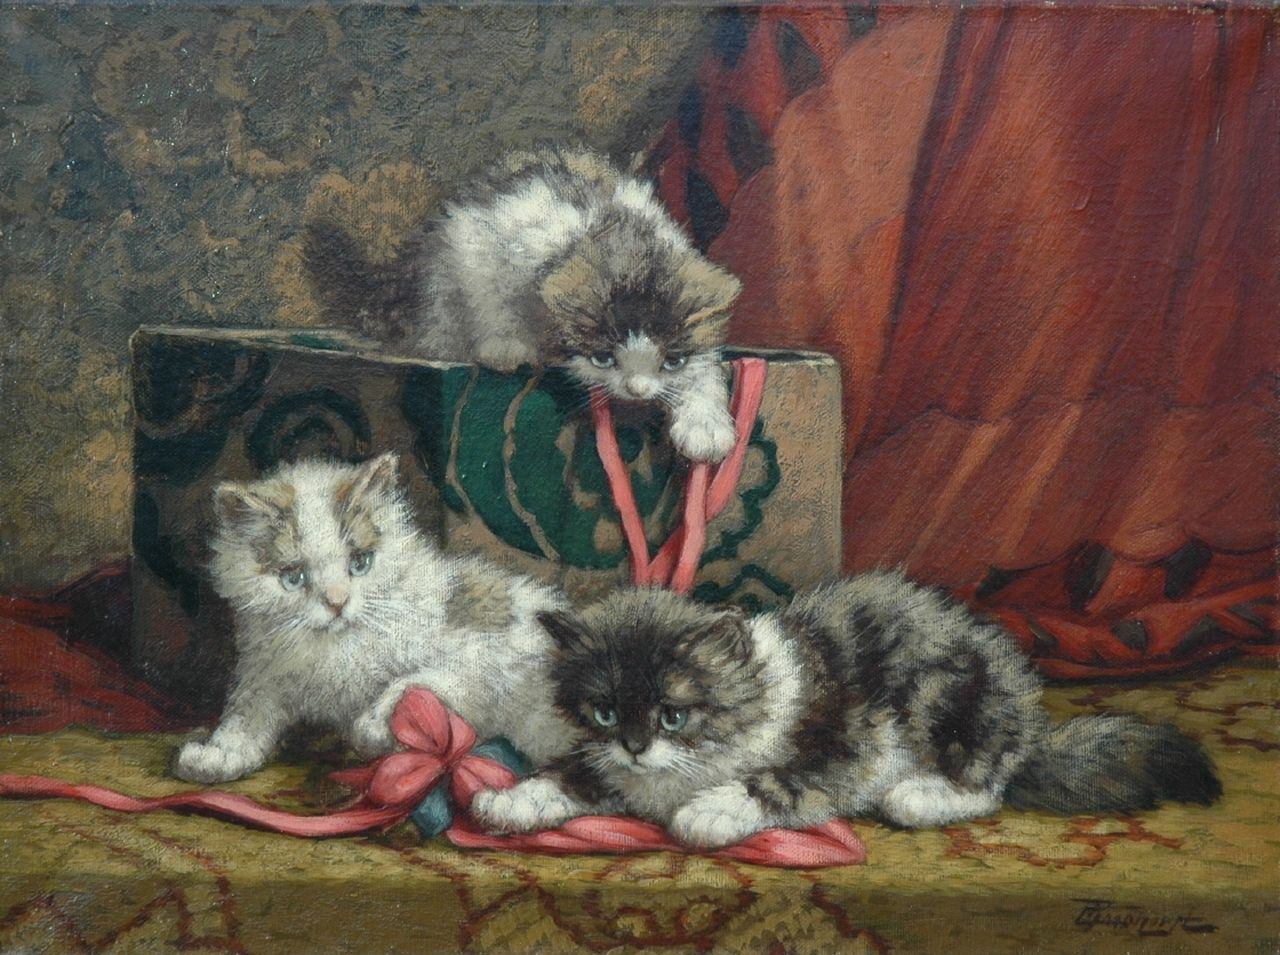 Raaphorst C.  | Cornelis Raaphorst, Three playing kittens and a box of ribbons, oil on canvas 29.8 x 40.0 cm, signed l.r.